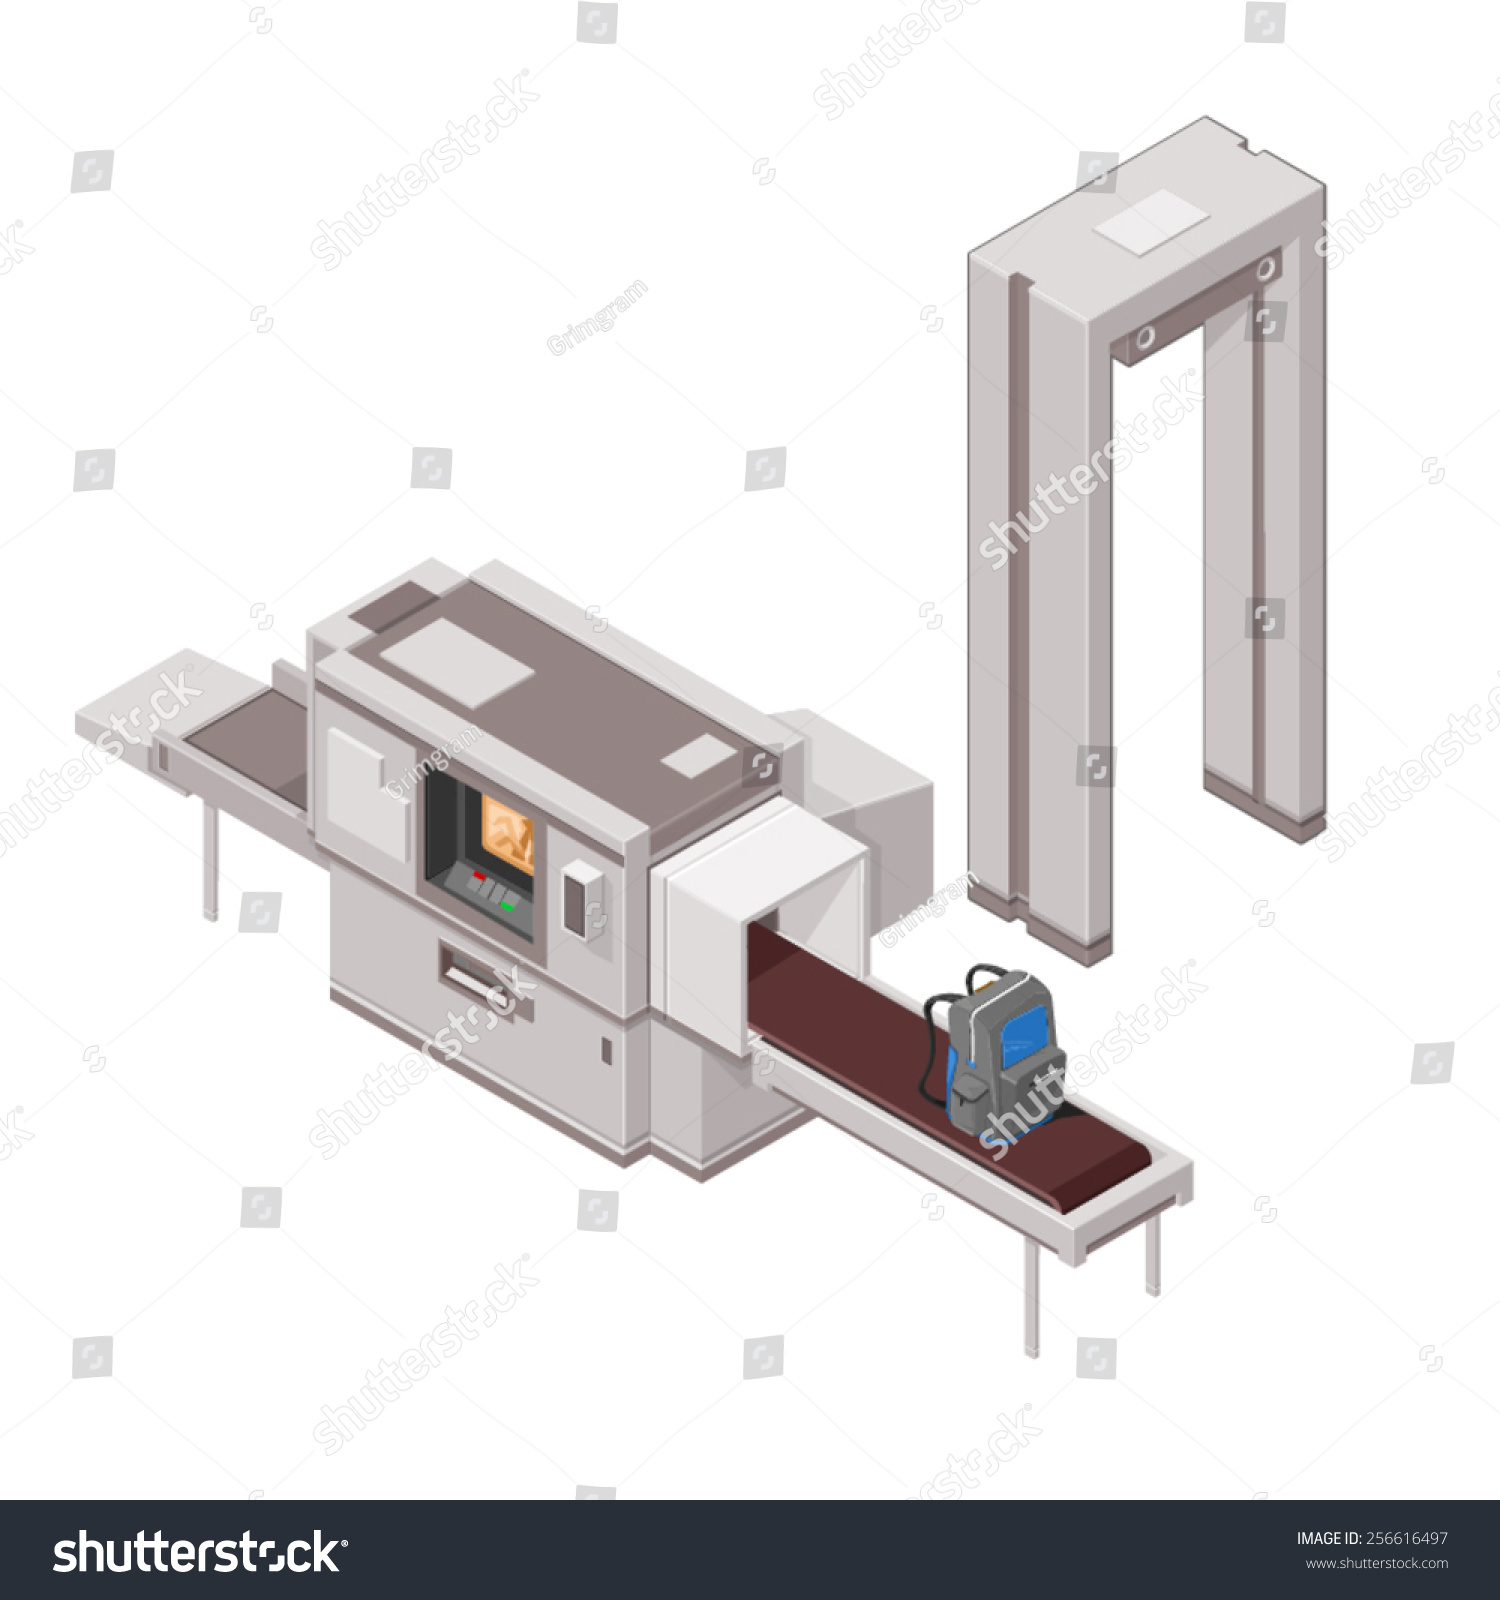 hight resolution of a vector illustration of airport security with luggage and x ray machine isometric airport